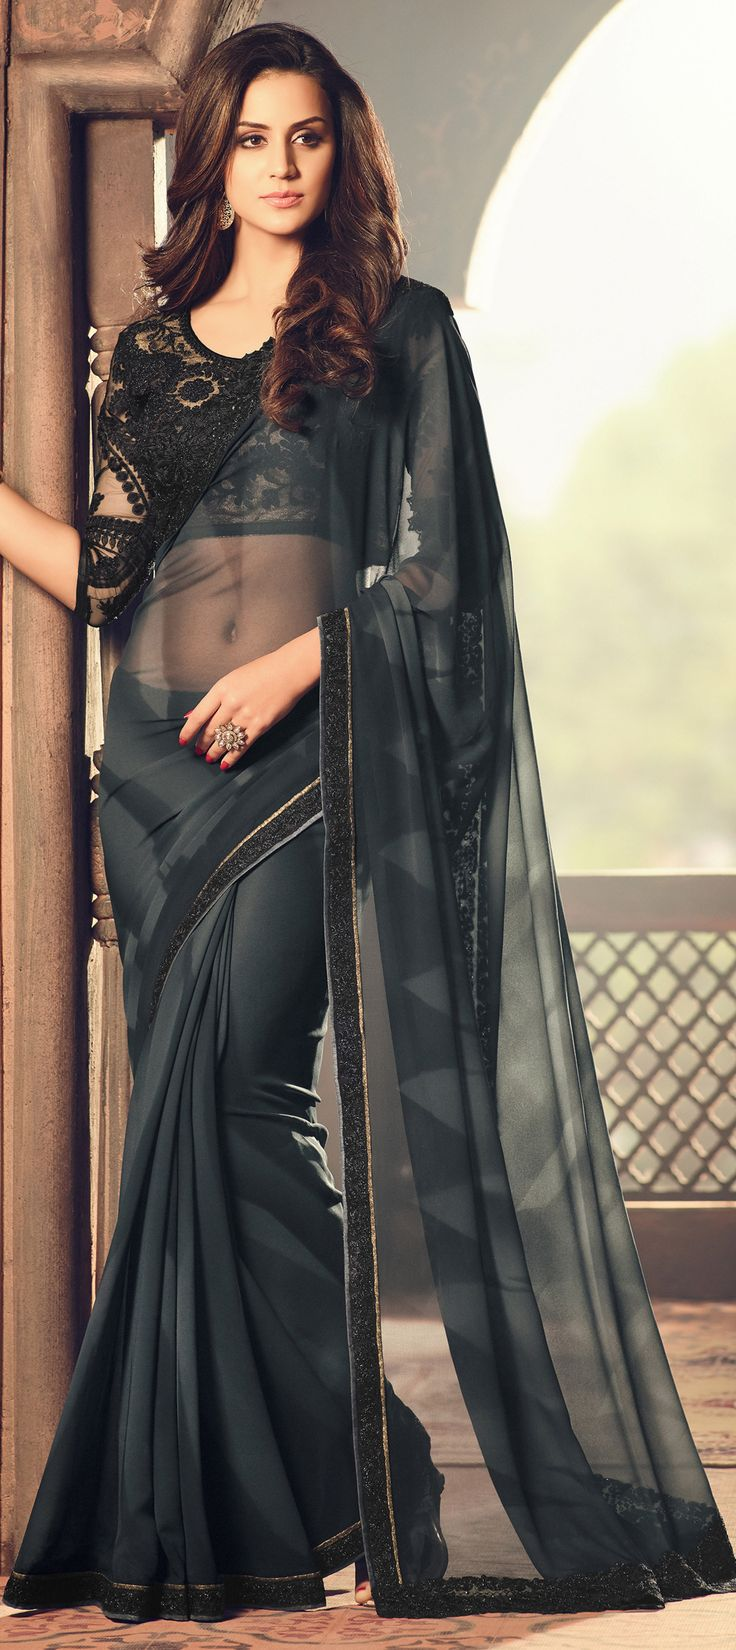 748854 Black and Grey color family Embroidered Sarees, Party Wear Sarees in Faux Chiffon, Georgette fabric with Lace, Machine Embroidery, Stone, Thread work with matching unstitched blouse.